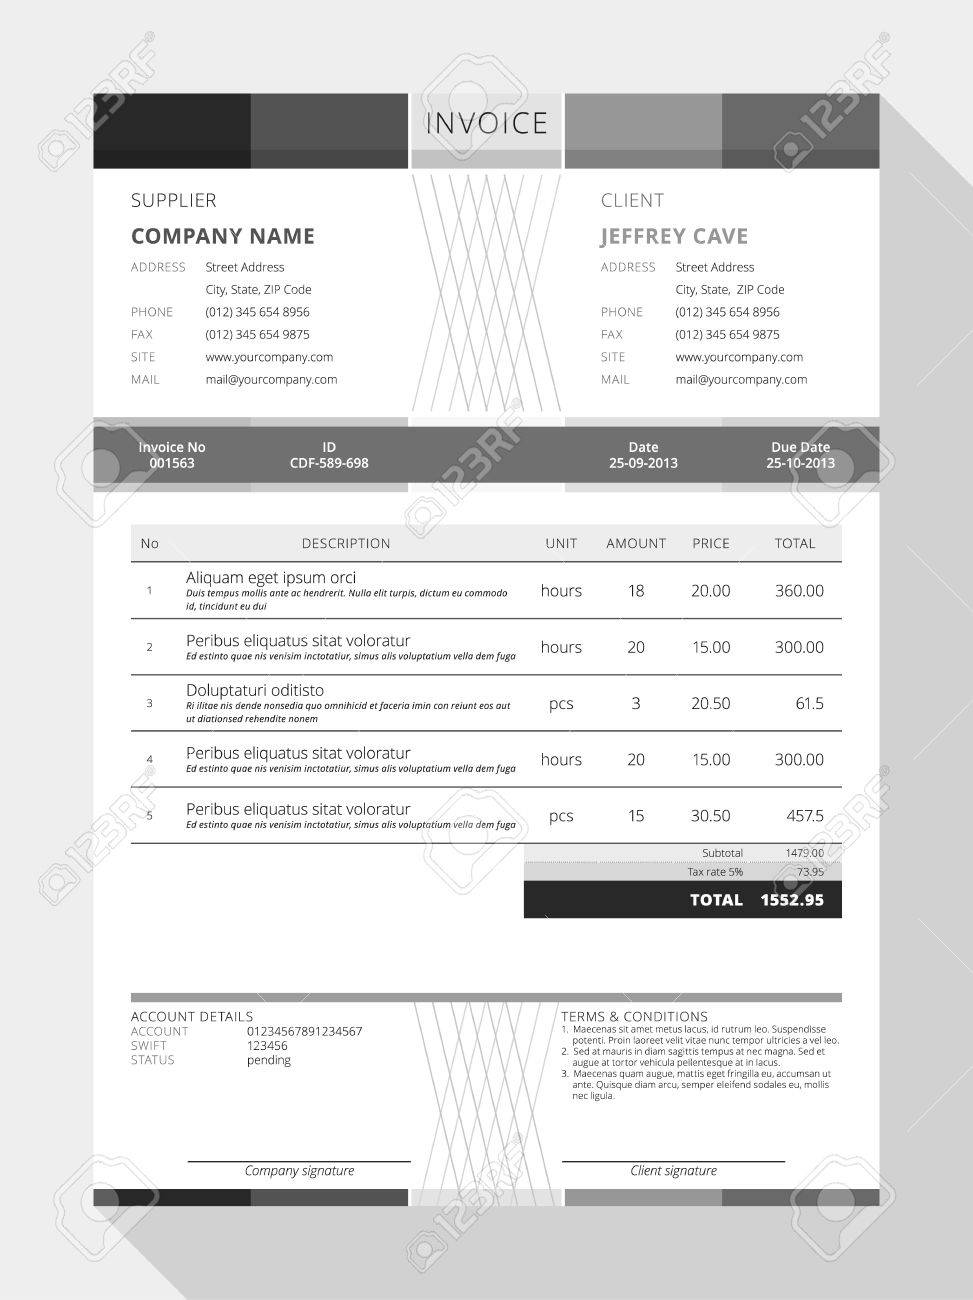 Pxworkoutfreeus  Marvellous Design An Invoice  Professional Graphic Design Invoice  With Interesting Vector Customizable Invoice Form Template Design Vector   Design An Invoice With Amazing Estimate And Invoice Software Also What Is Invoice Price On A Car In Addition Past Due Invoice Notice And Recurring Invoice As Well As My Invoice And Estimates Additionally Excel Invoice Software From Happytomco With Pxworkoutfreeus  Interesting Design An Invoice  Professional Graphic Design Invoice  With Amazing Vector Customizable Invoice Form Template Design Vector   Design An Invoice And Marvellous Estimate And Invoice Software Also What Is Invoice Price On A Car In Addition Past Due Invoice Notice From Happytomco